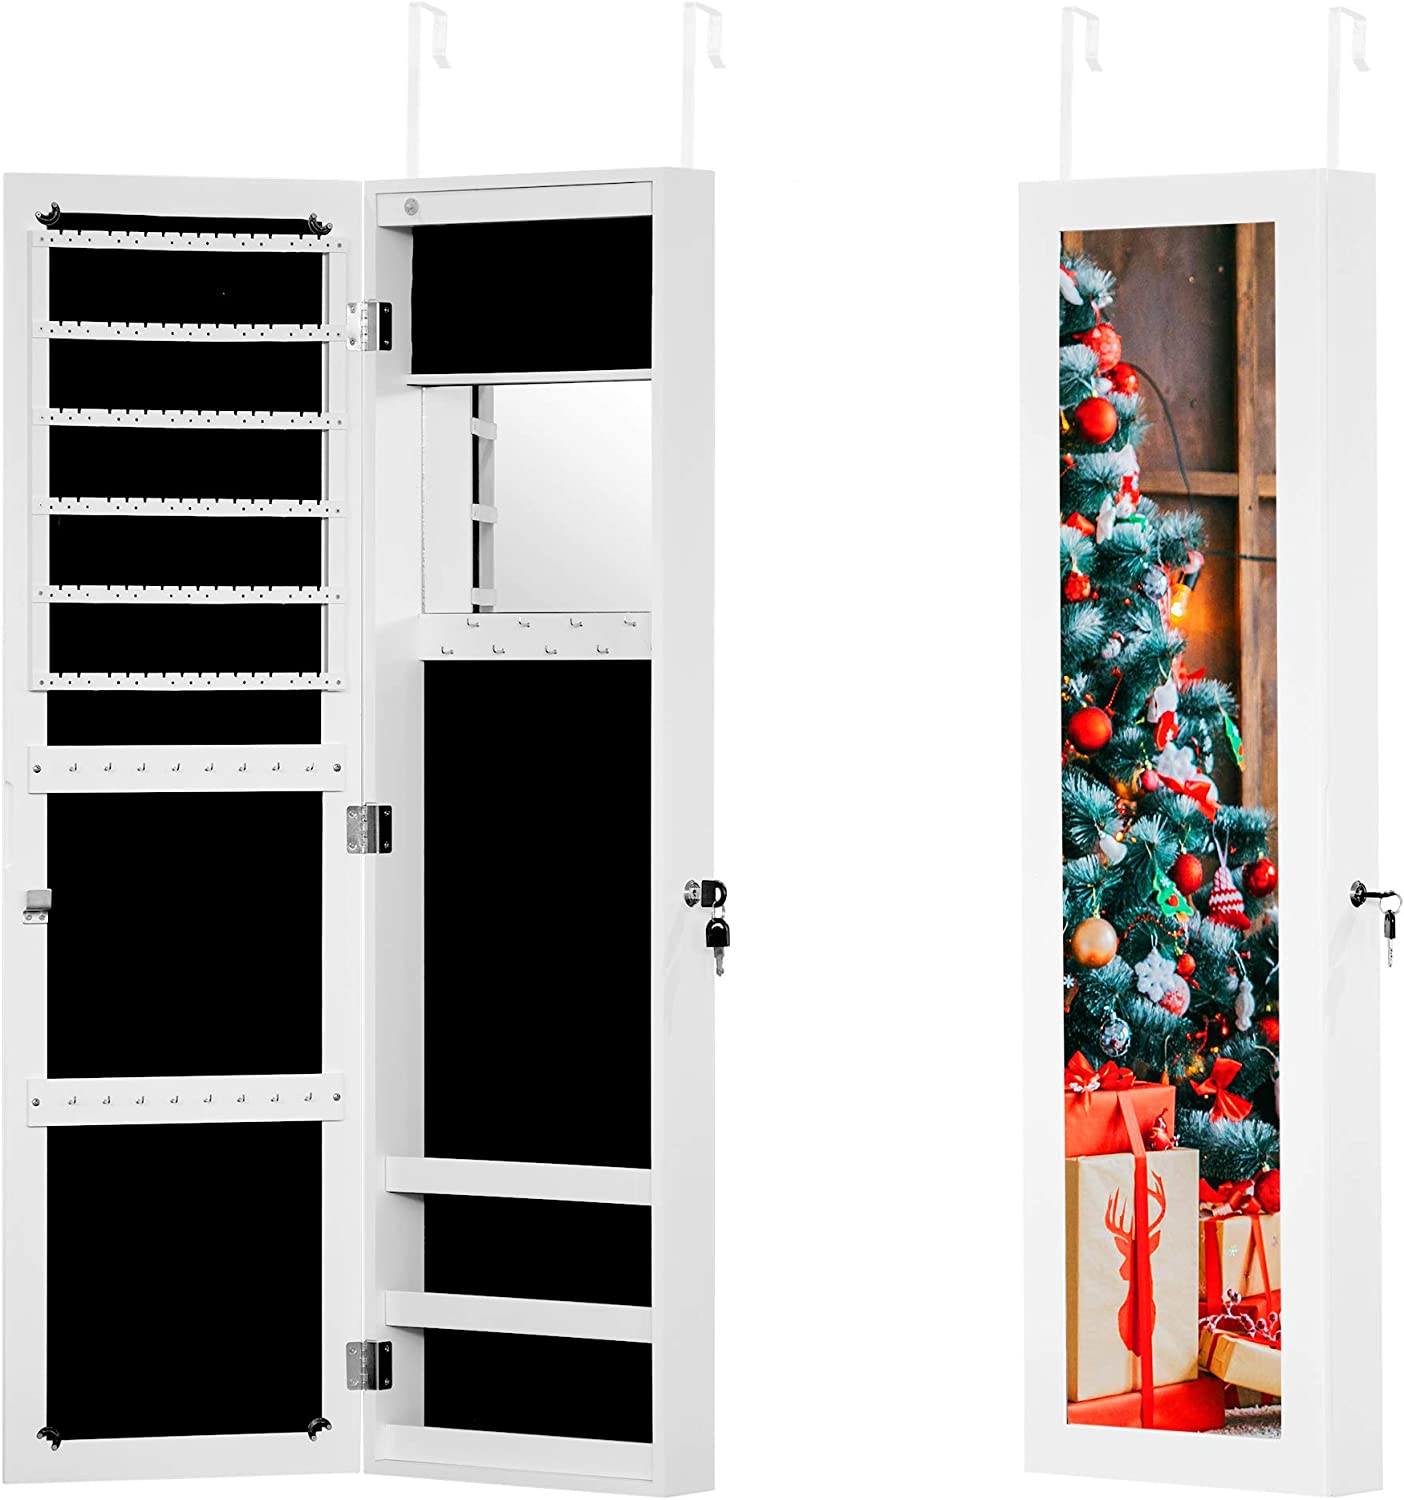 White 12 LEDs Jewelry Cabinet with Full Screen Mirror Foxloly Wall//Door Mounted Jewelry Armoire Organizer Full Length Dressing Mirror